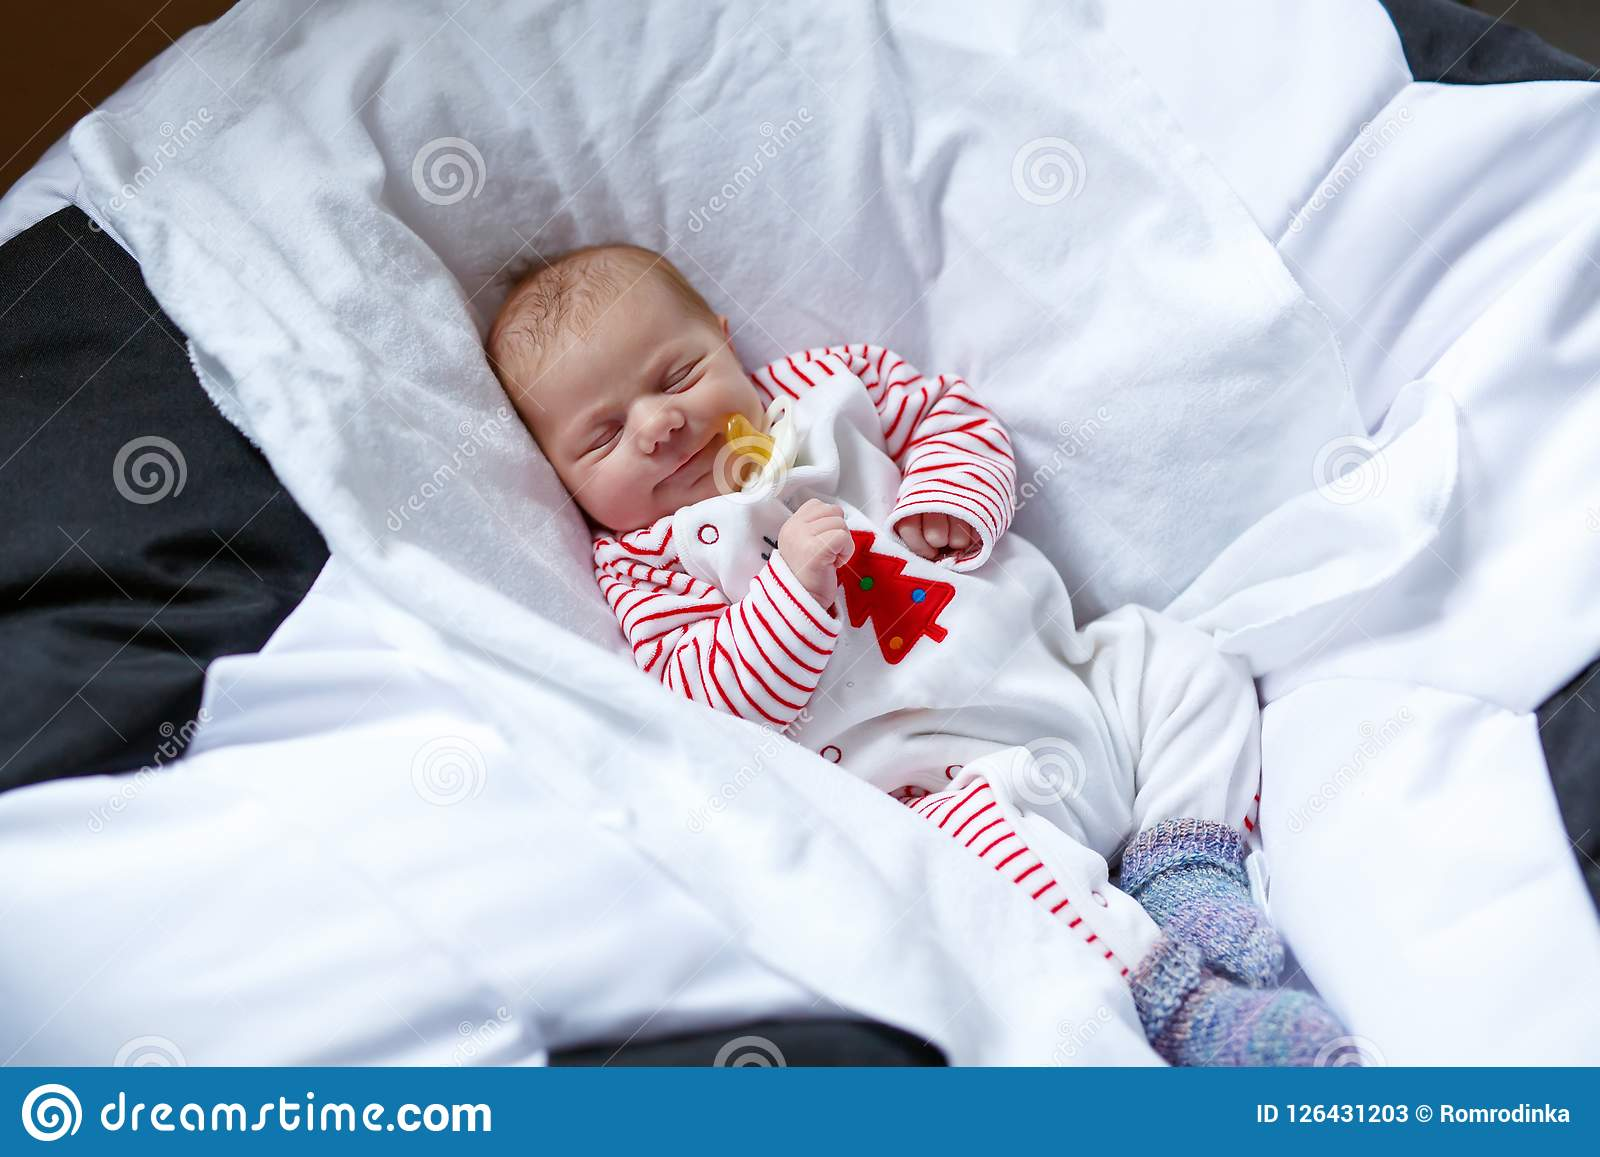 585a74b35 Cute adorable newborn baby sleeping peaceful in bed. New born child, little  girl laying in bed. Family, new life, childhood, beginning concept.